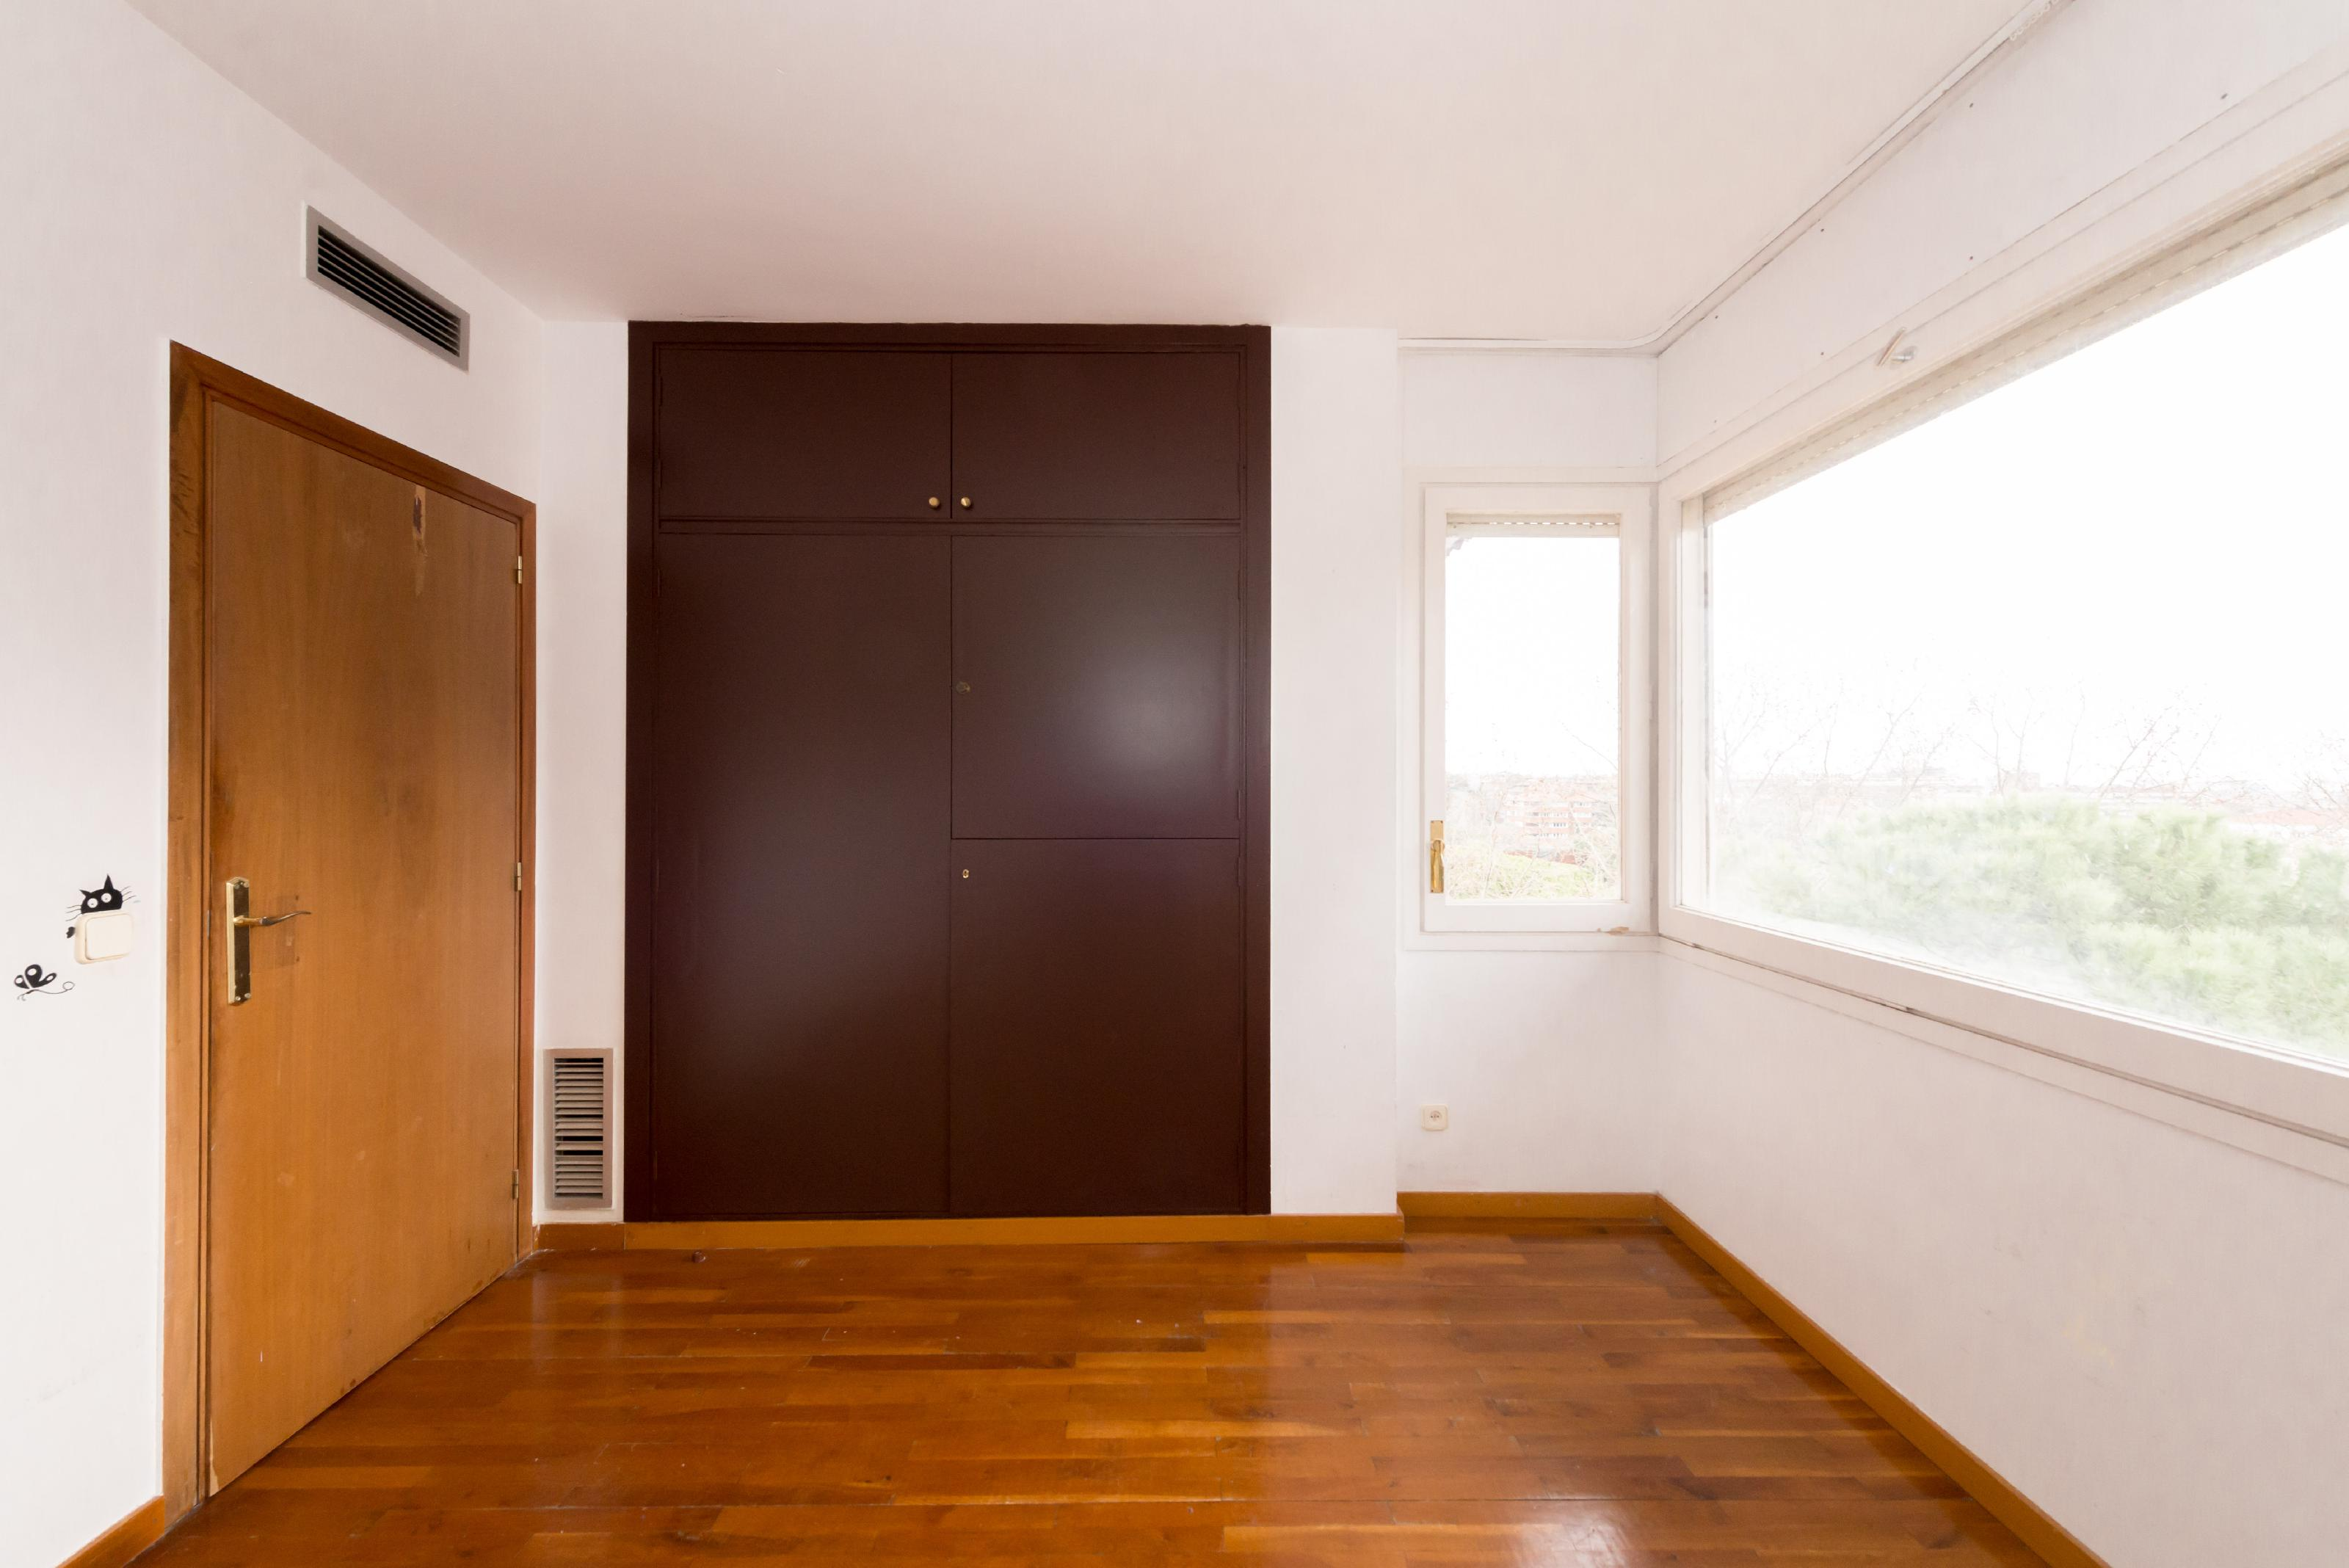 245495 Penthouse for sale in Les Corts, Pedralbes 24